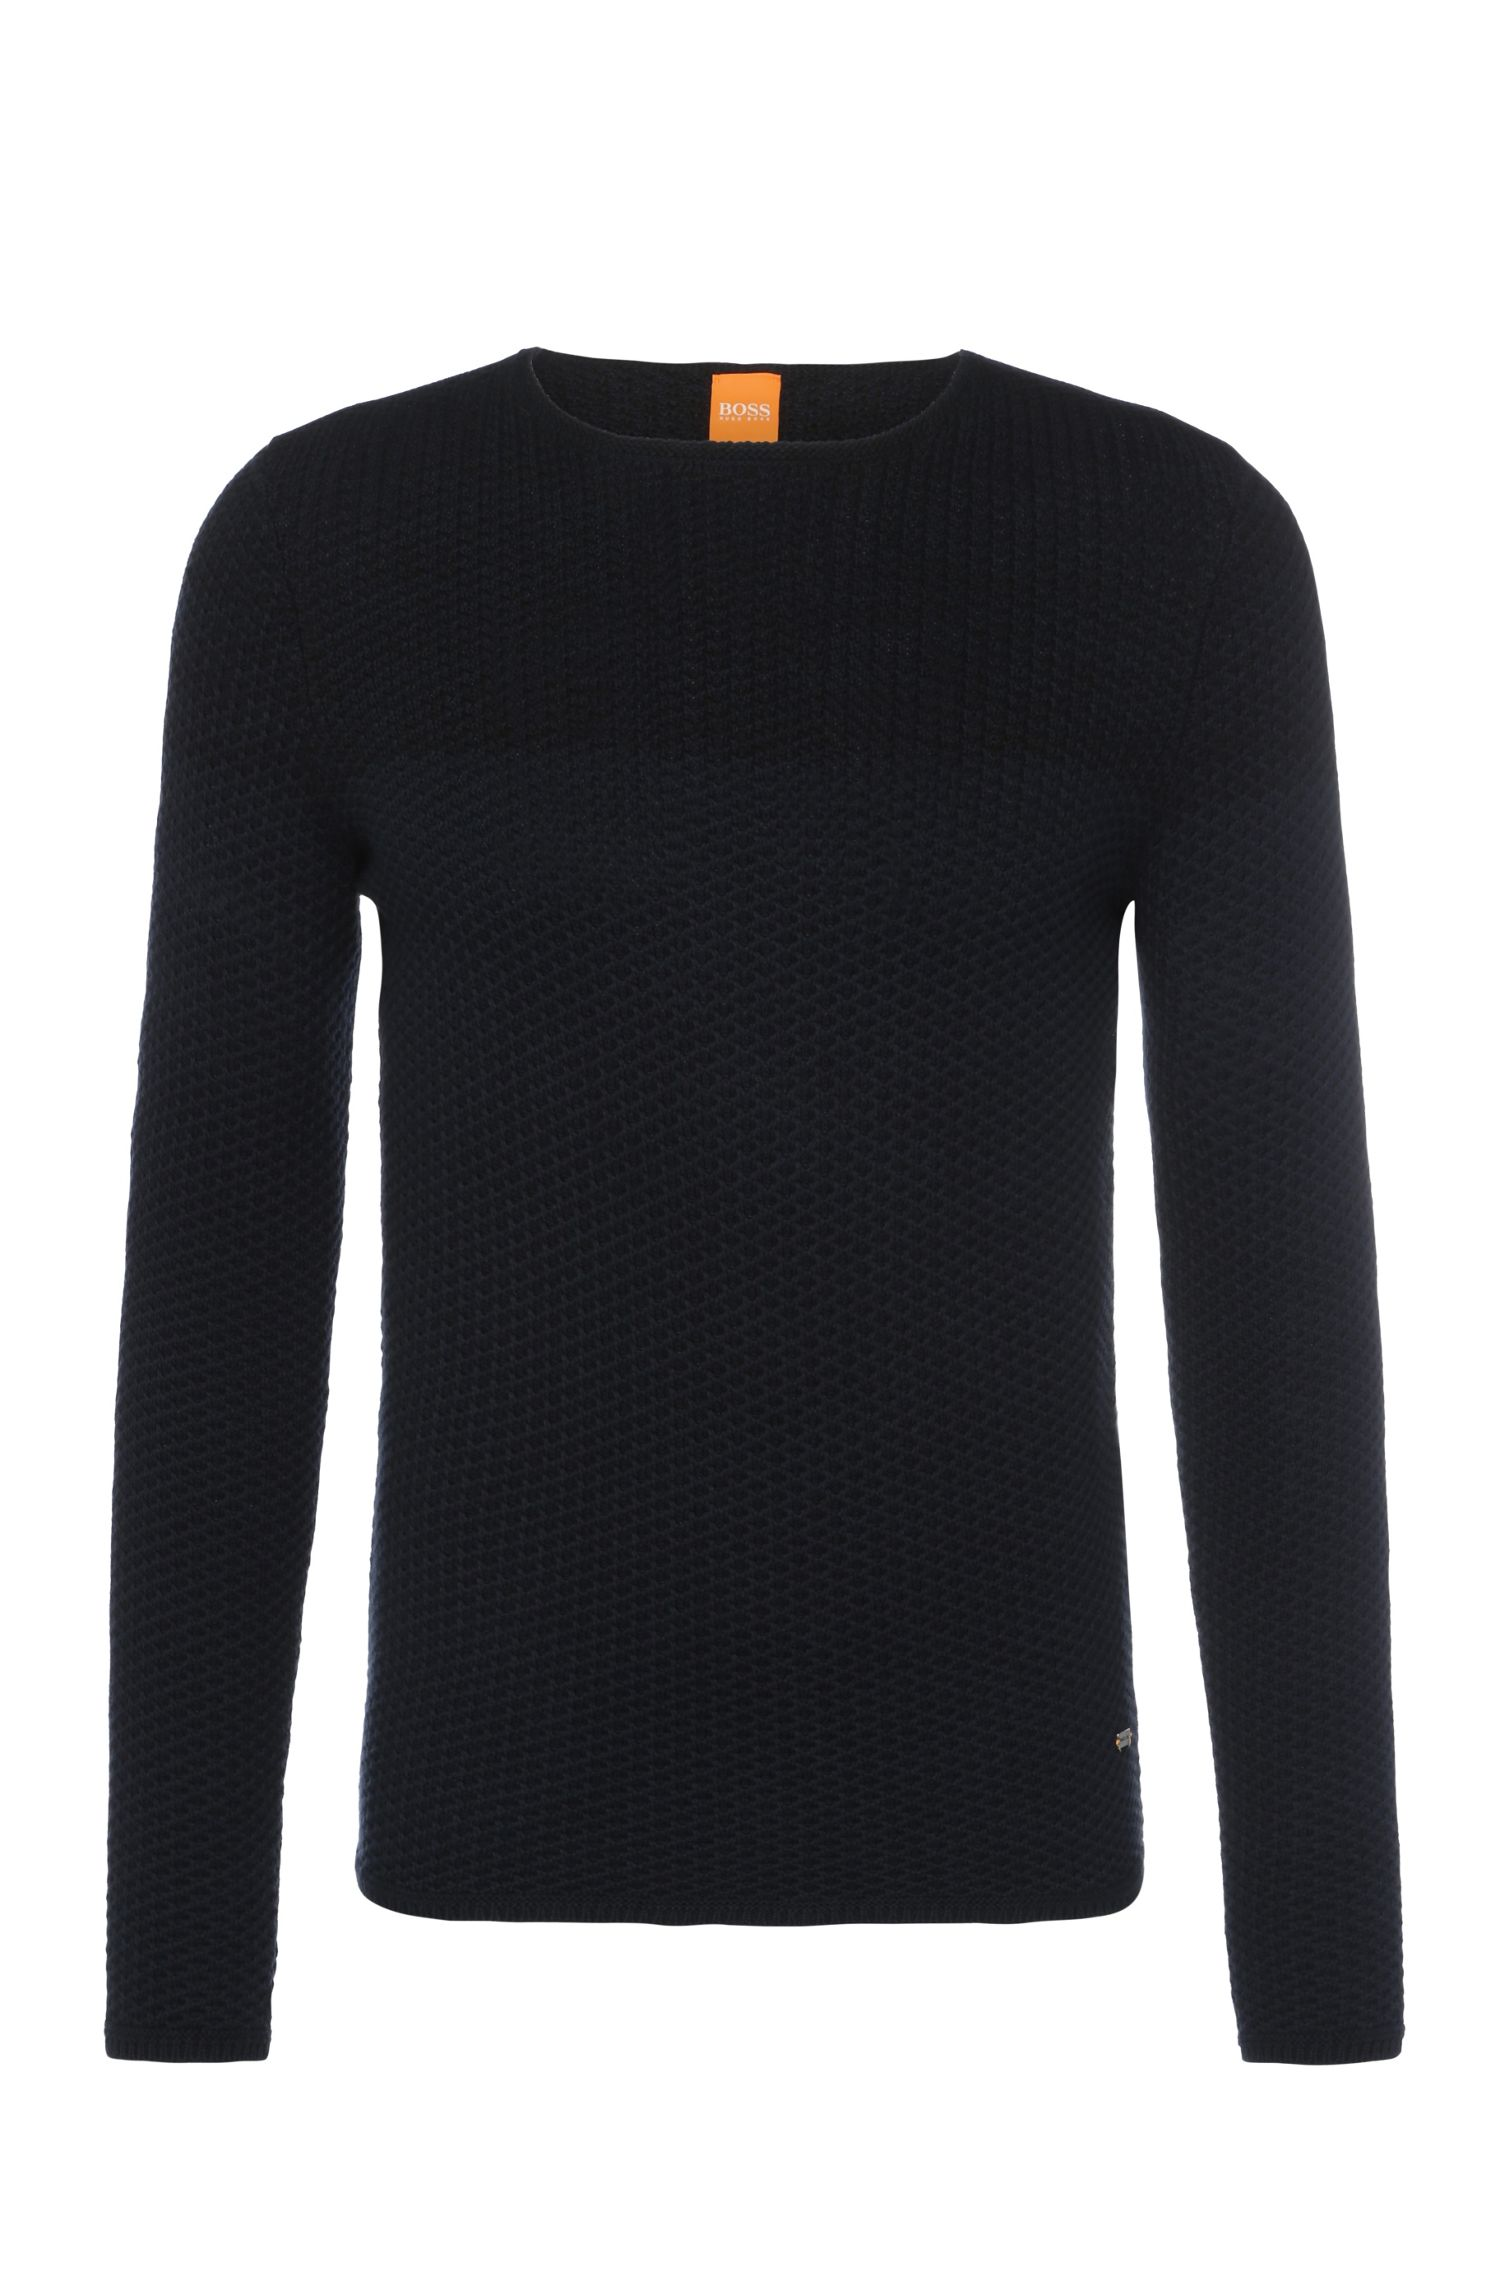 Slim-fit sweater in knitted cotton: 'Kwenys'